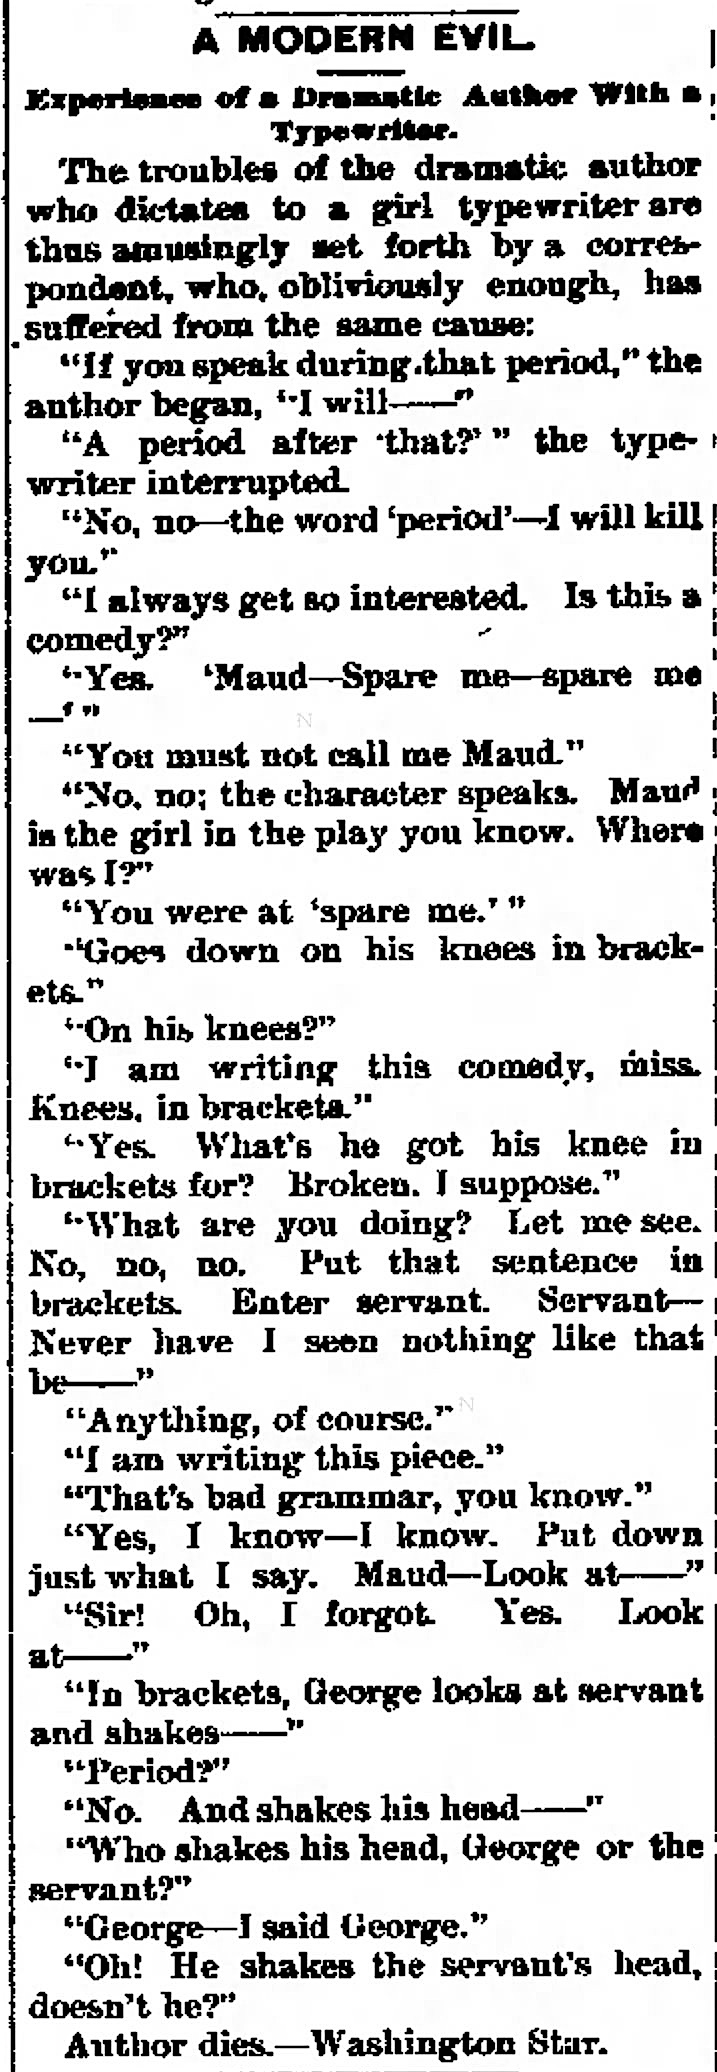 Wickedly funny. From the Daily Citizen (Iowa City, Iowa), June 21, 1892.